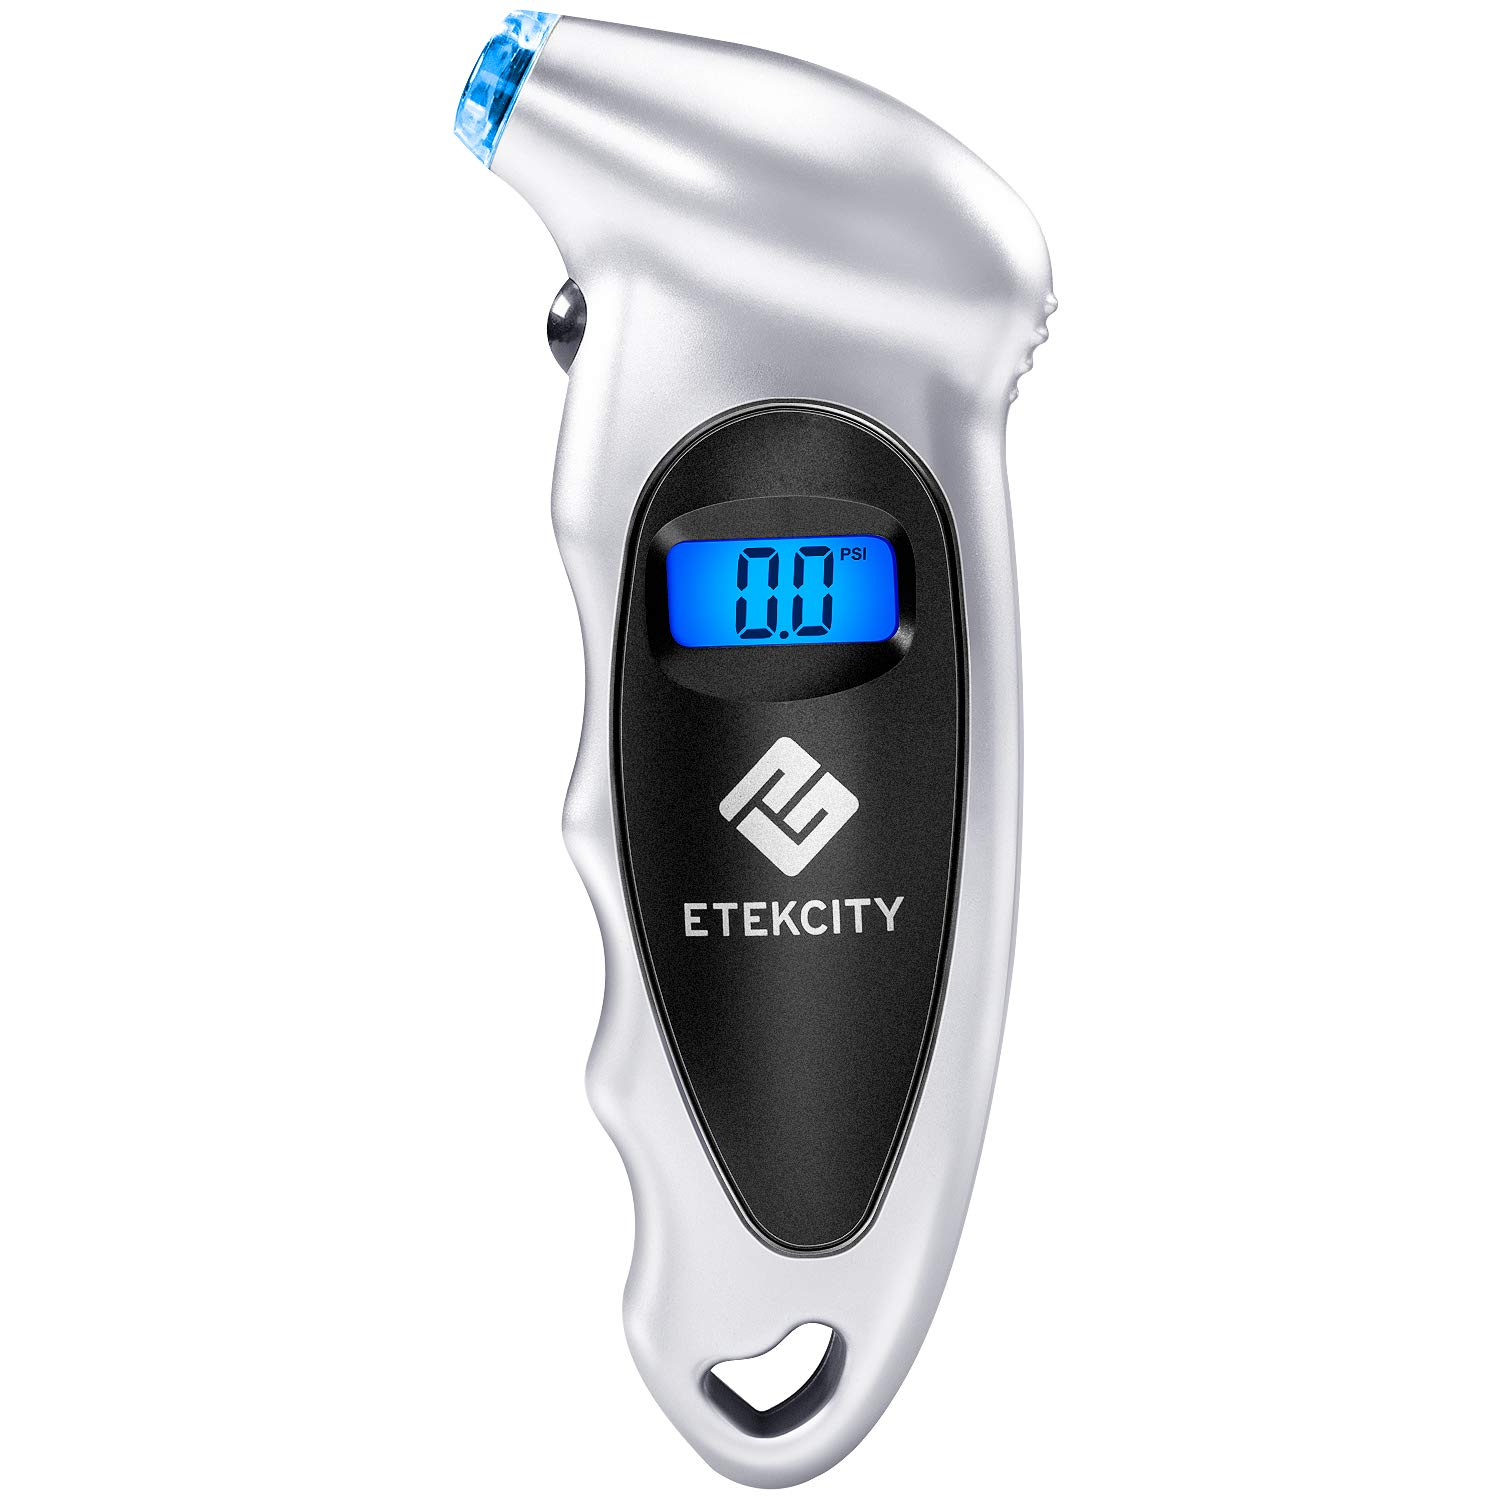 Etekcity Digital Tire Pressure Gauge 150 Psi 4 Settings for Car Truck Bicycle Bike with Backlit LCD, Non-Slip Grip & Lighted Nozzle, 2-Year Warranty, Batteries Included, Silver(1 Pack)